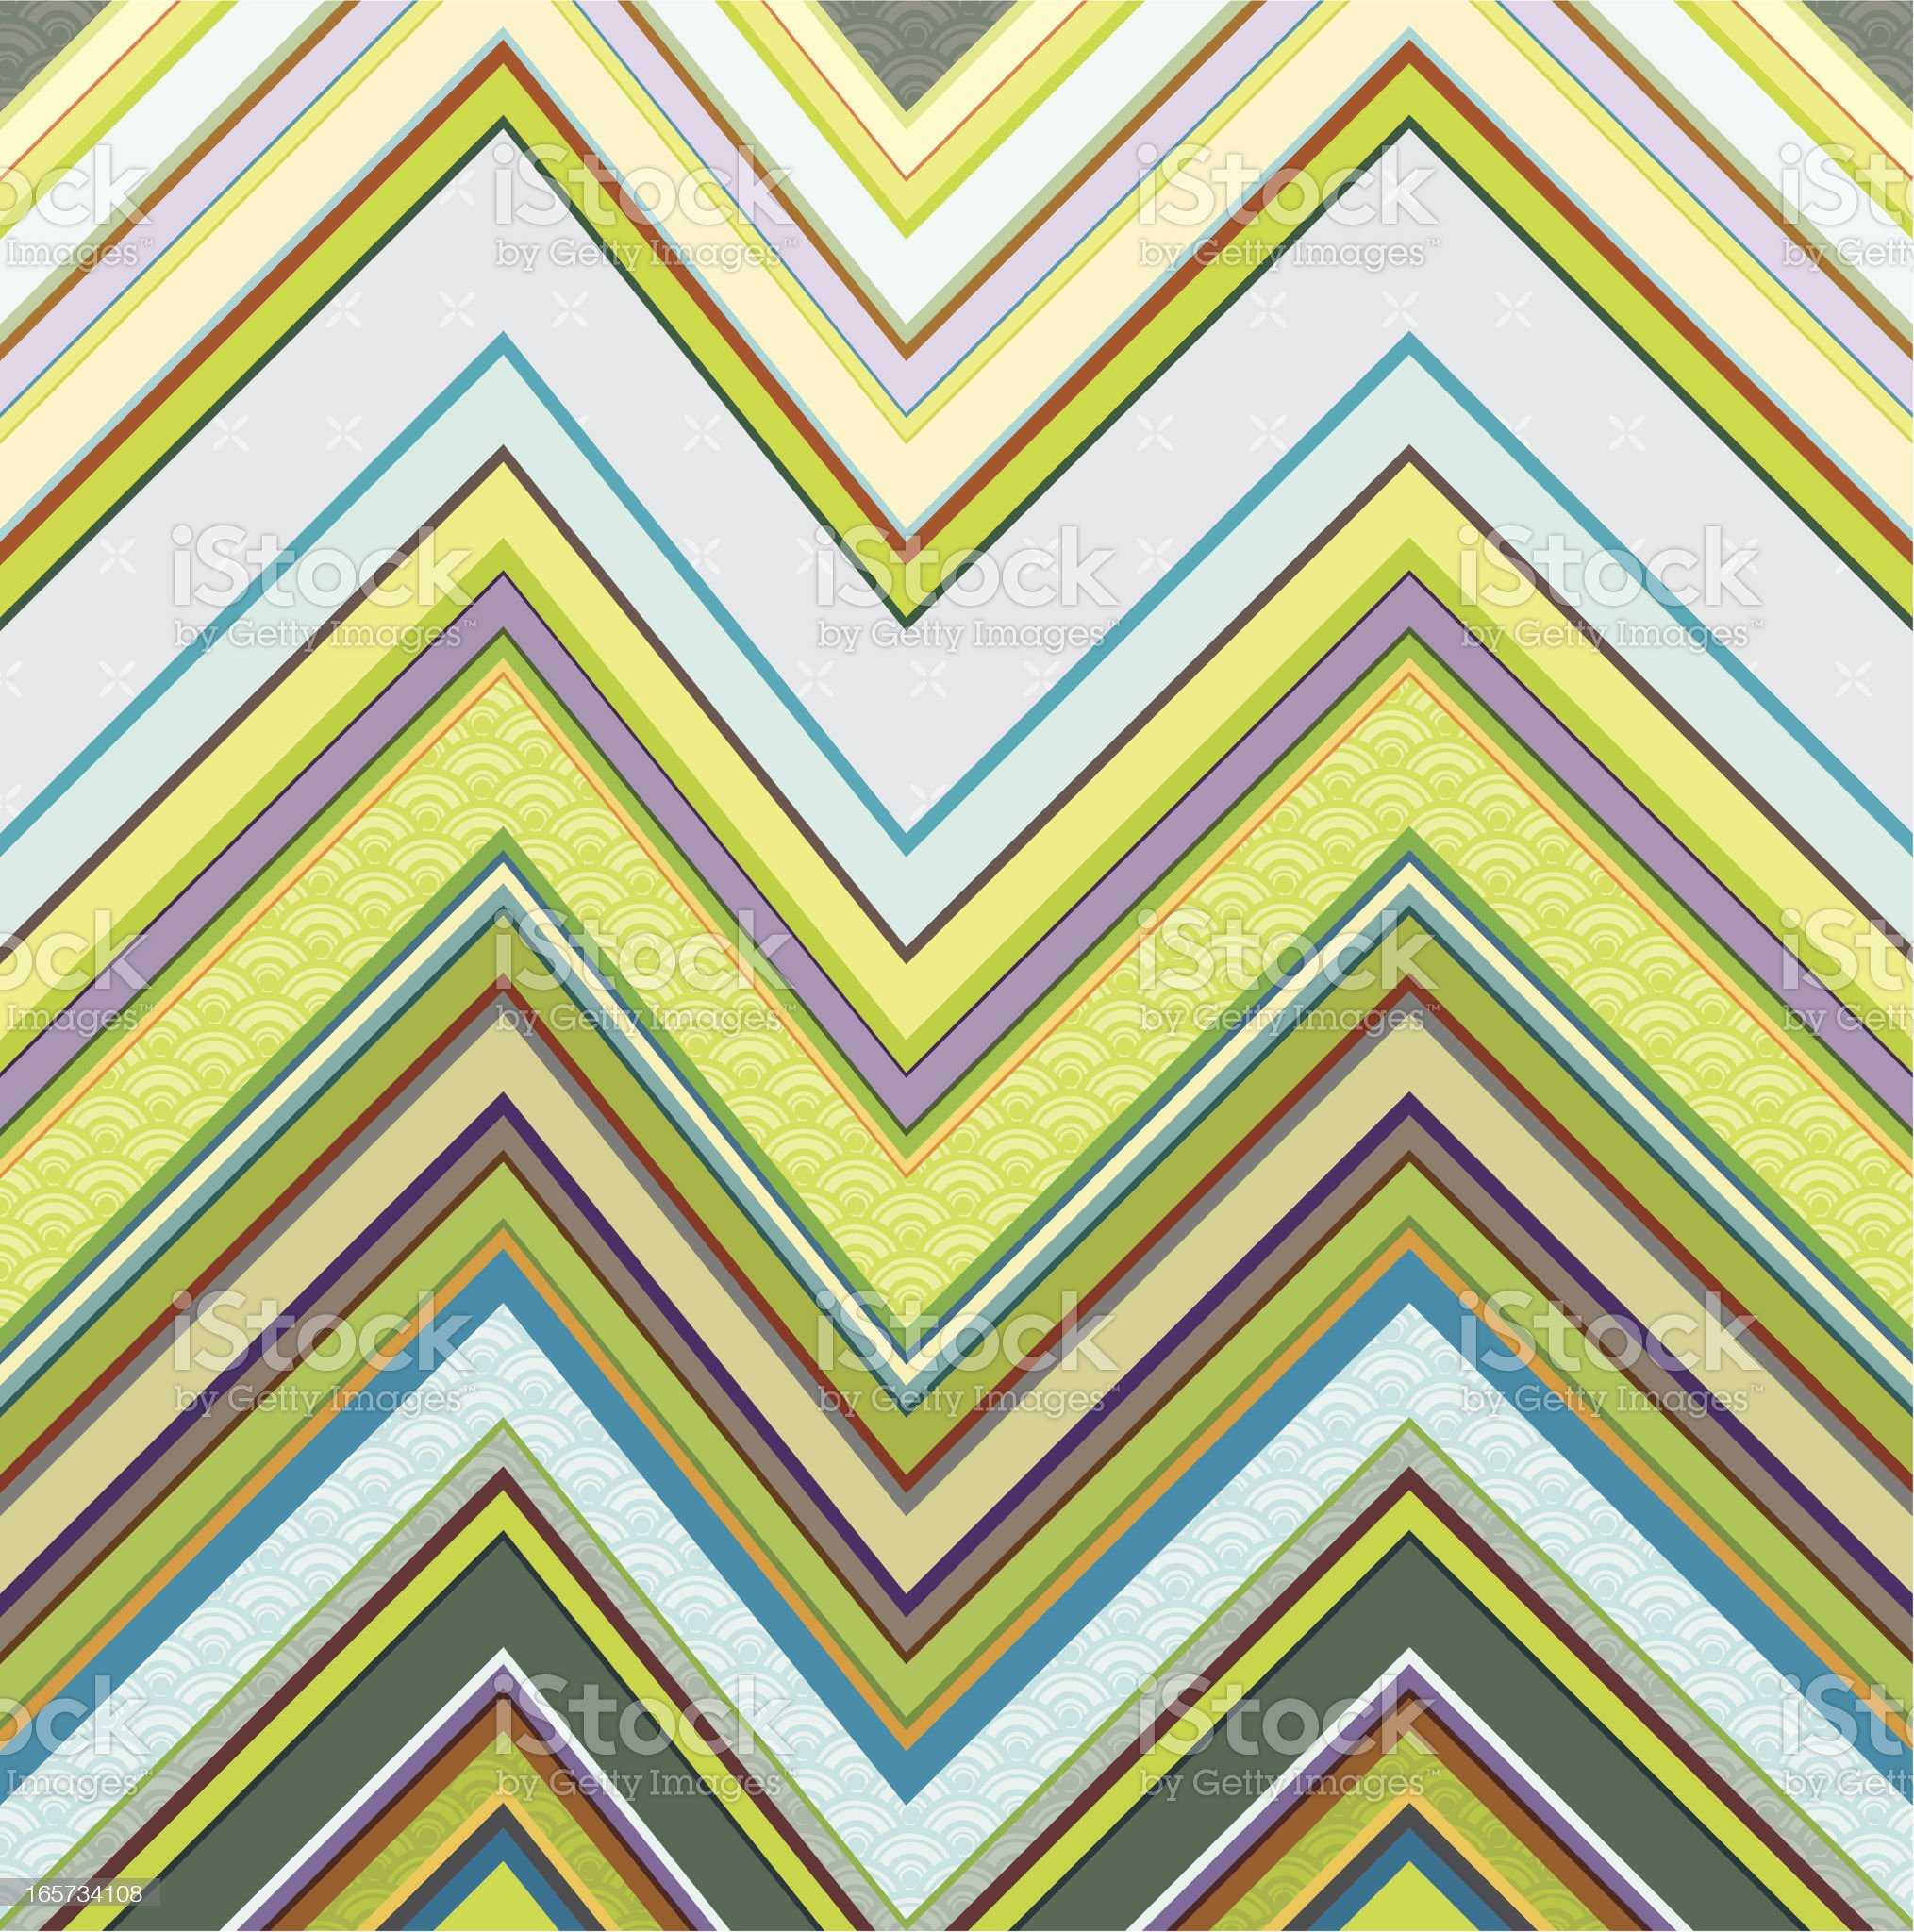 Spring in zigzag pattern royalty-free stock vector art